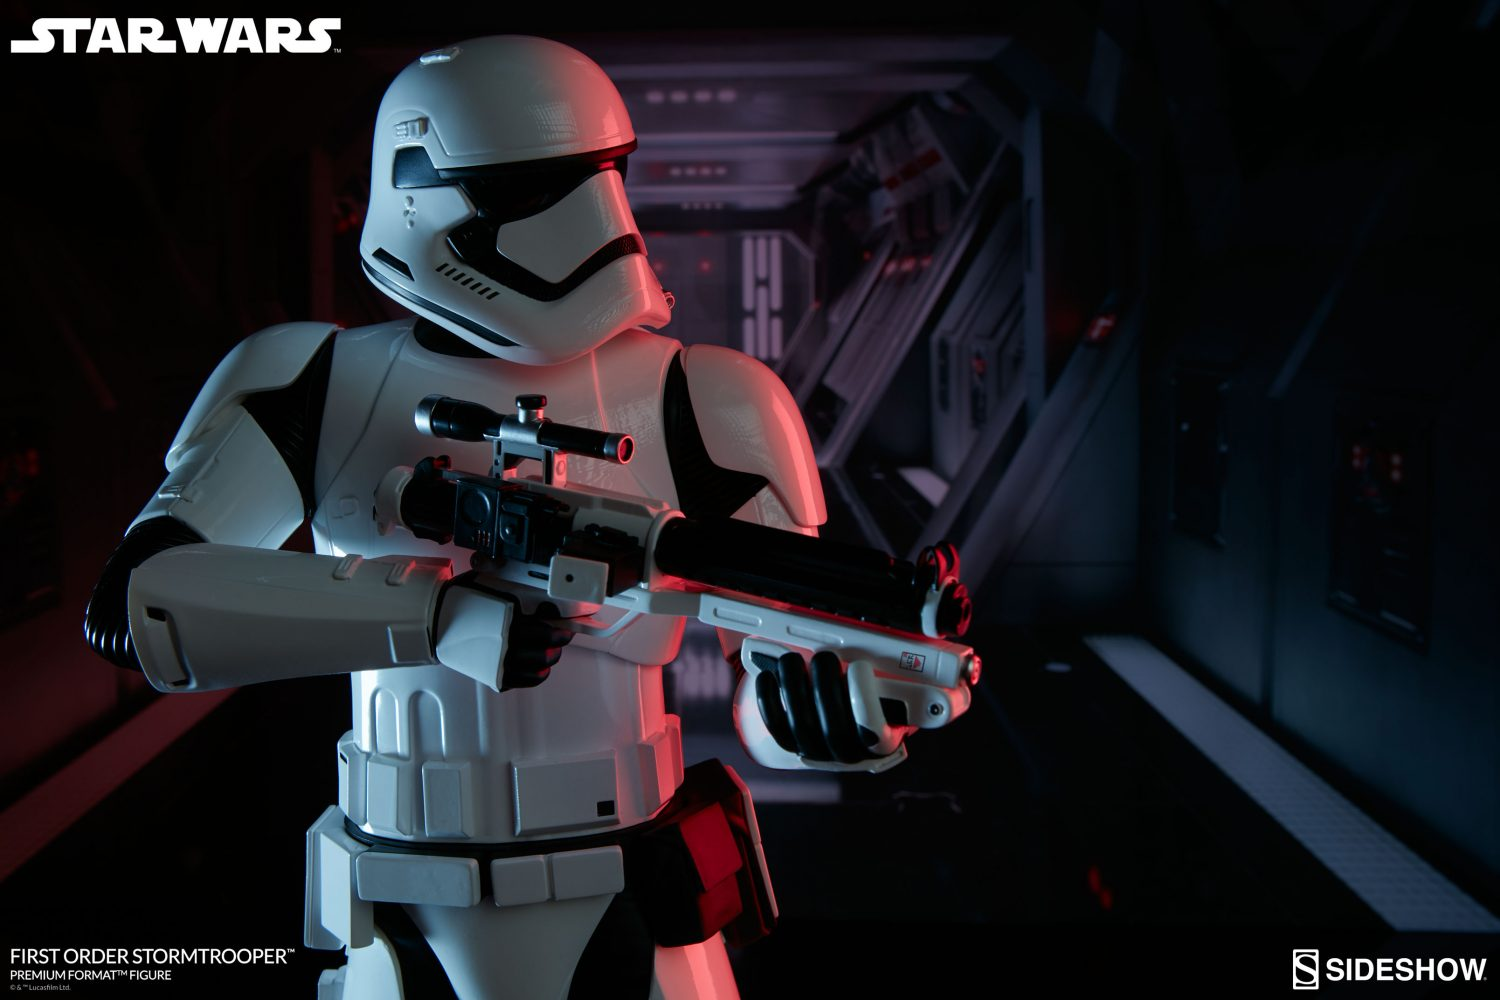 Sideshow Deal Of The Day – First Order Stormtrooper Premium Format Figure